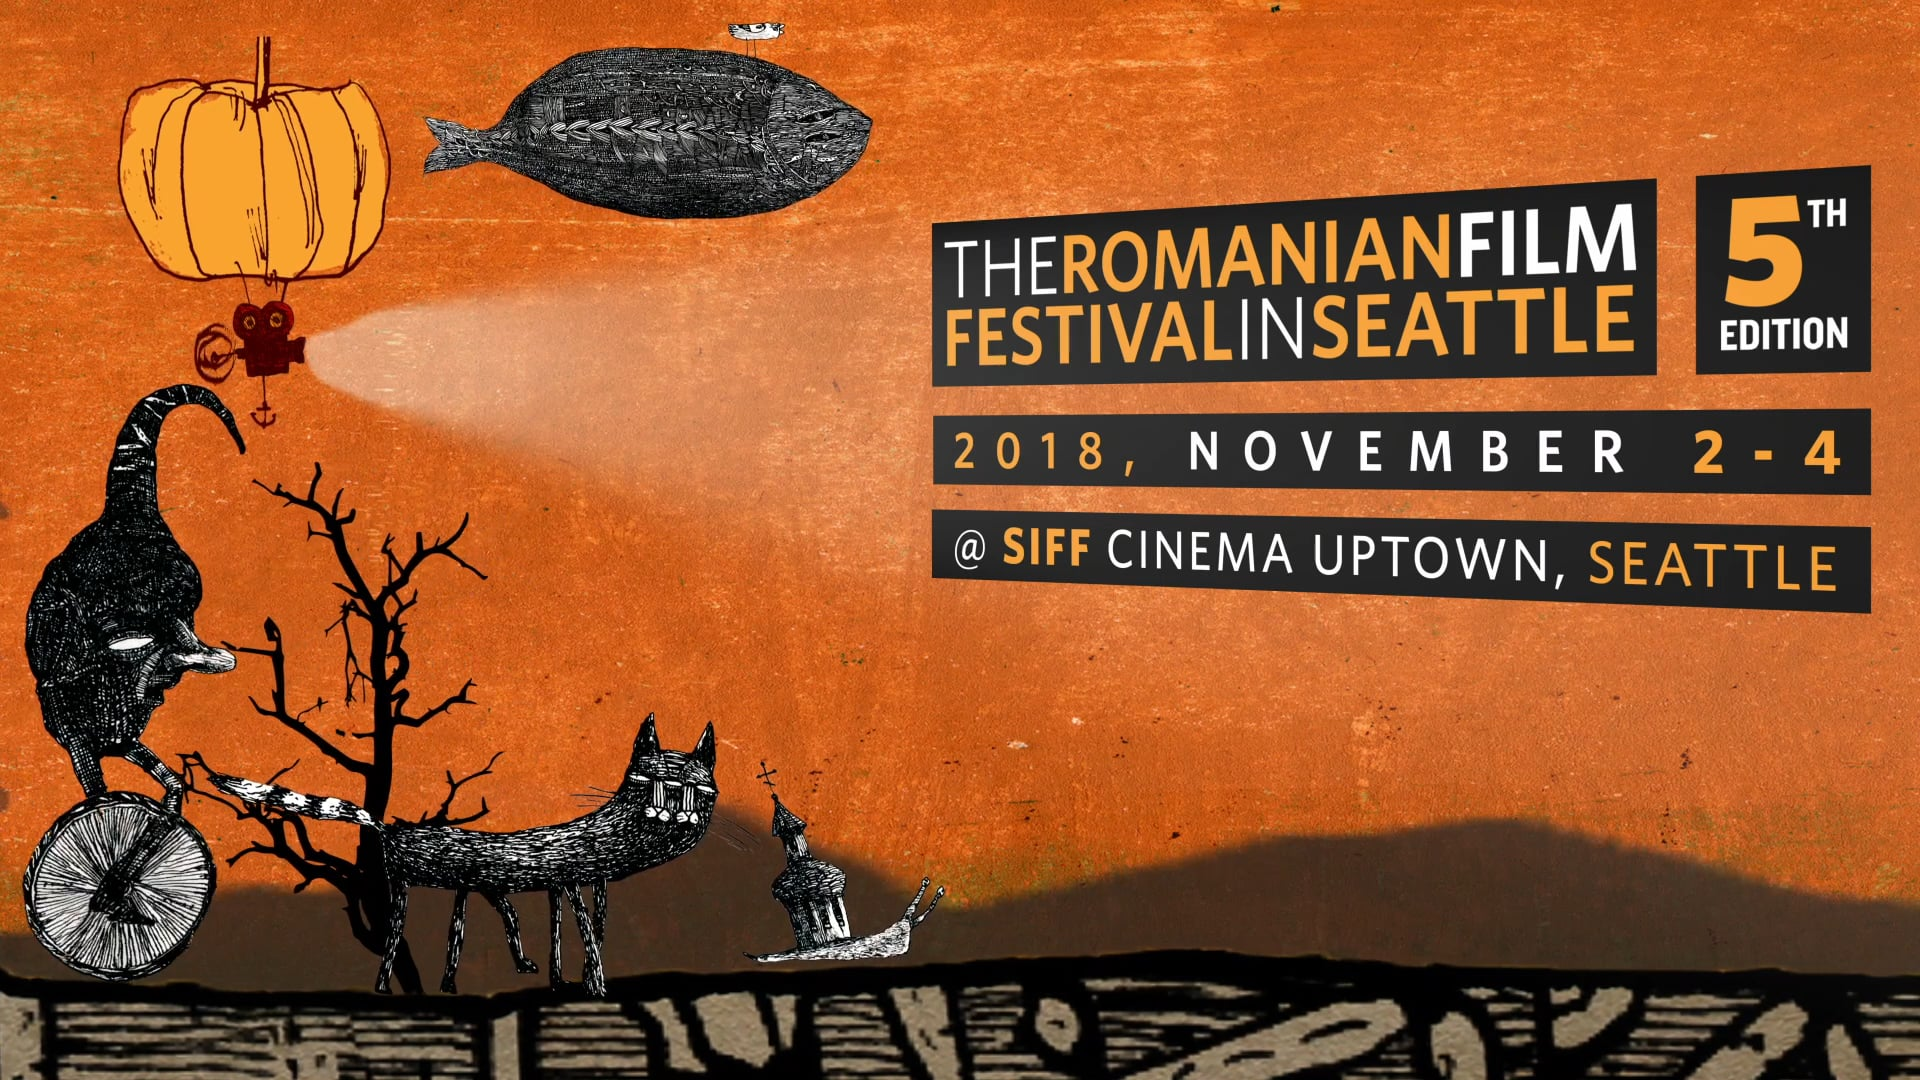 Poster image for Romanian Film Festival - 5th Edition